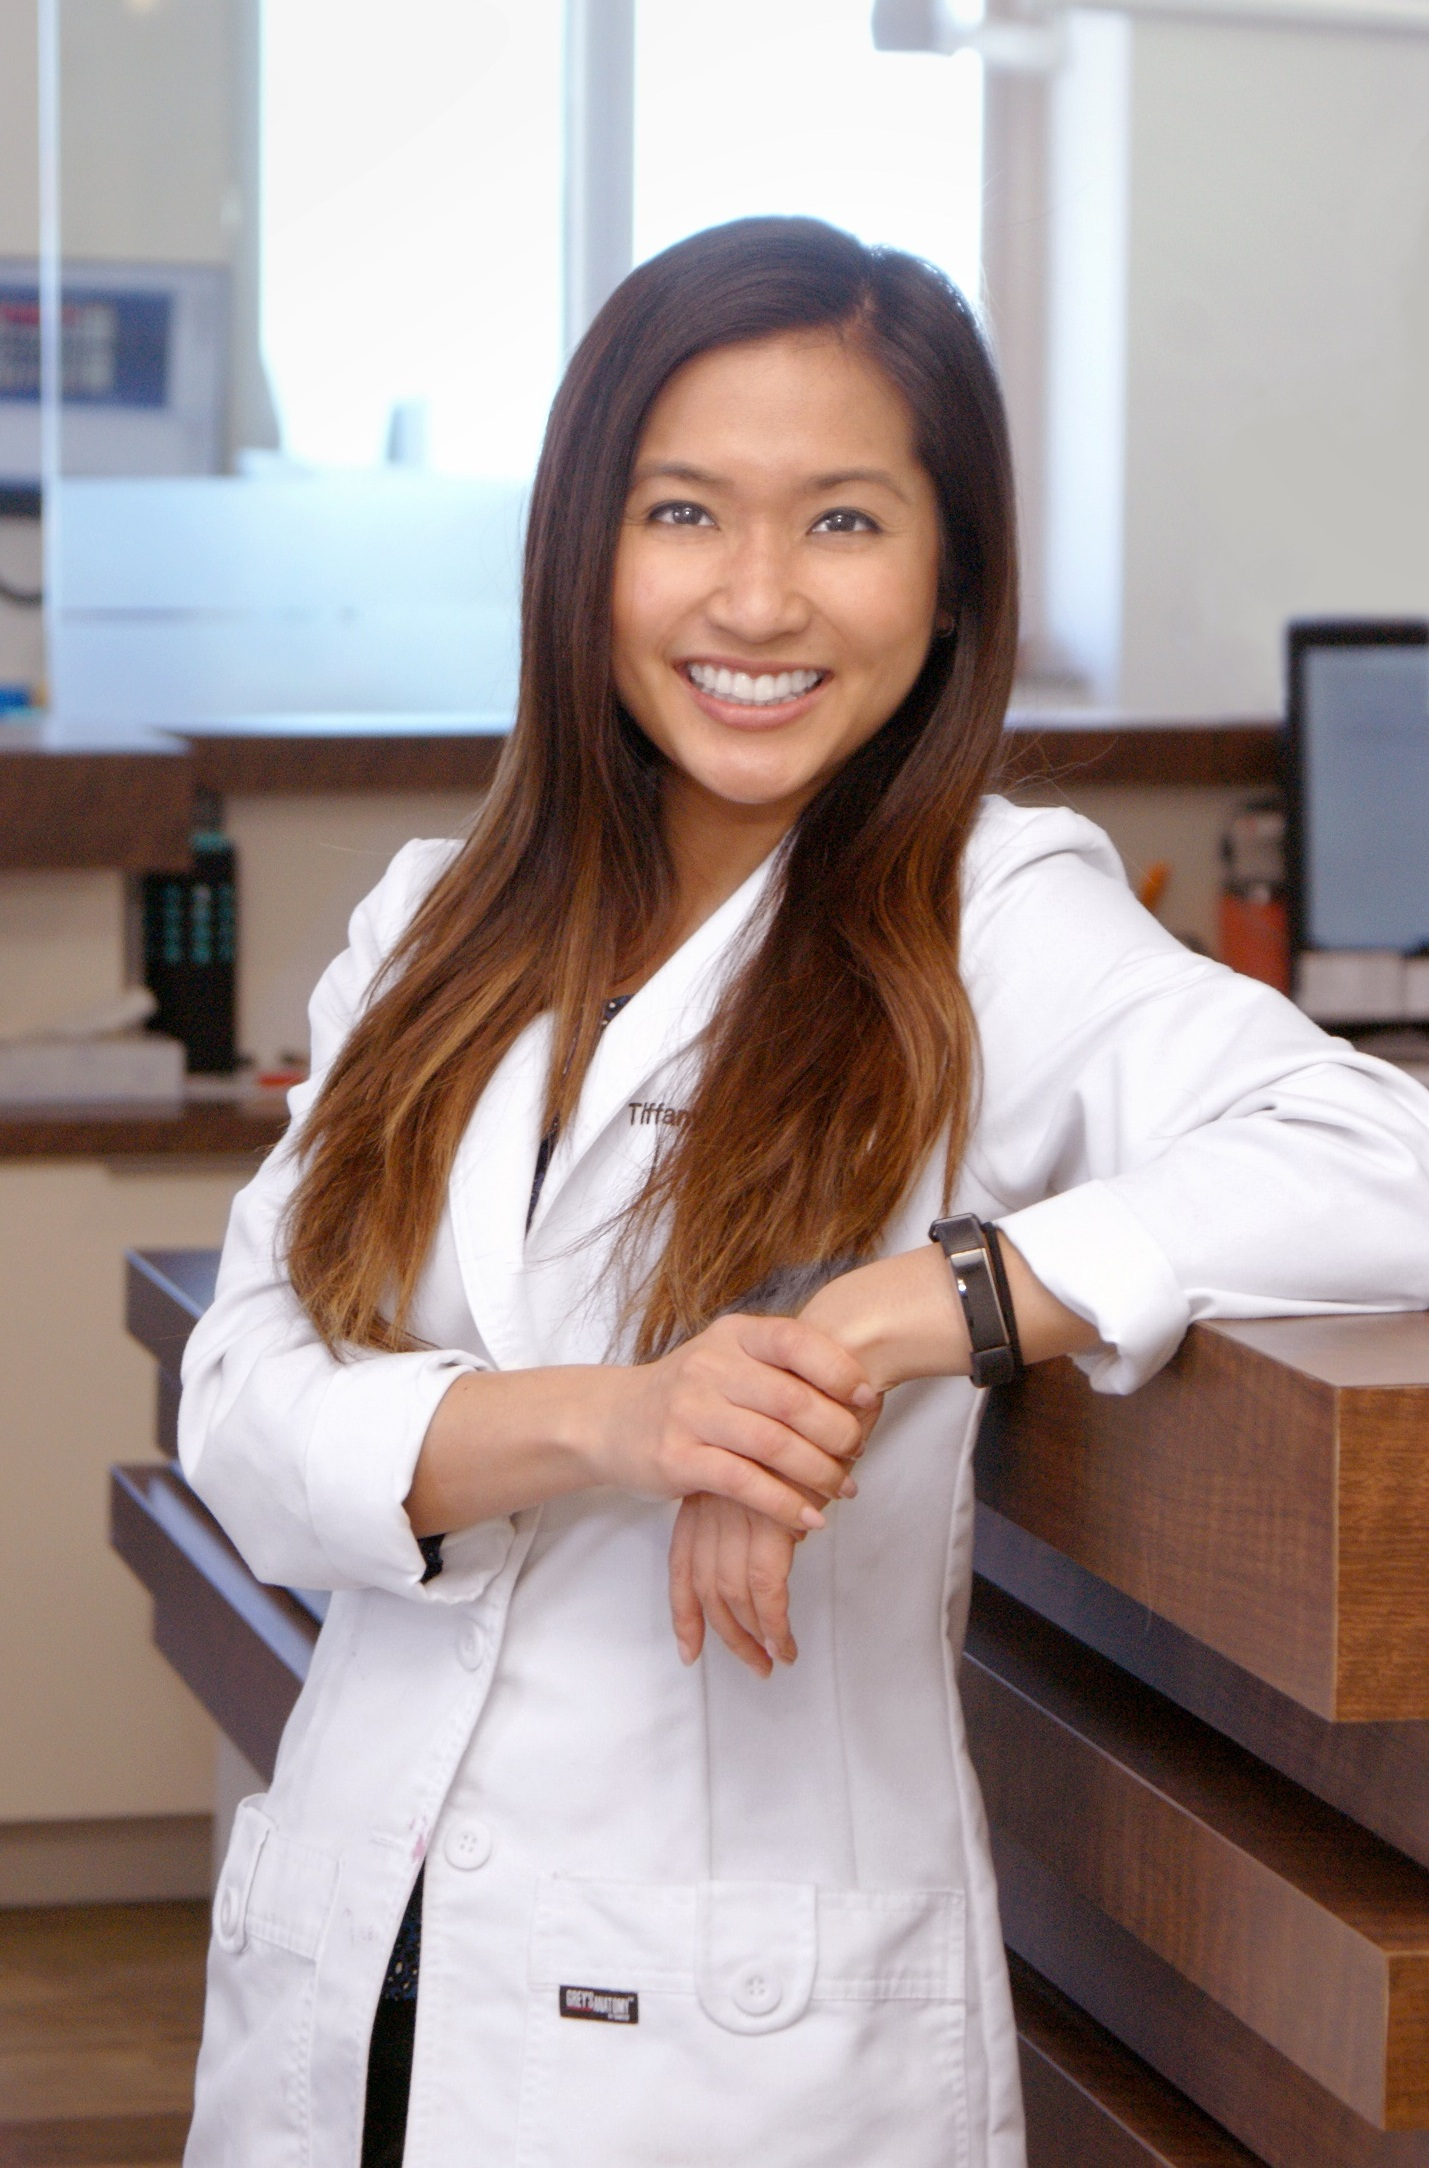 Dr. Tiffany Nguyen - Dental Associate